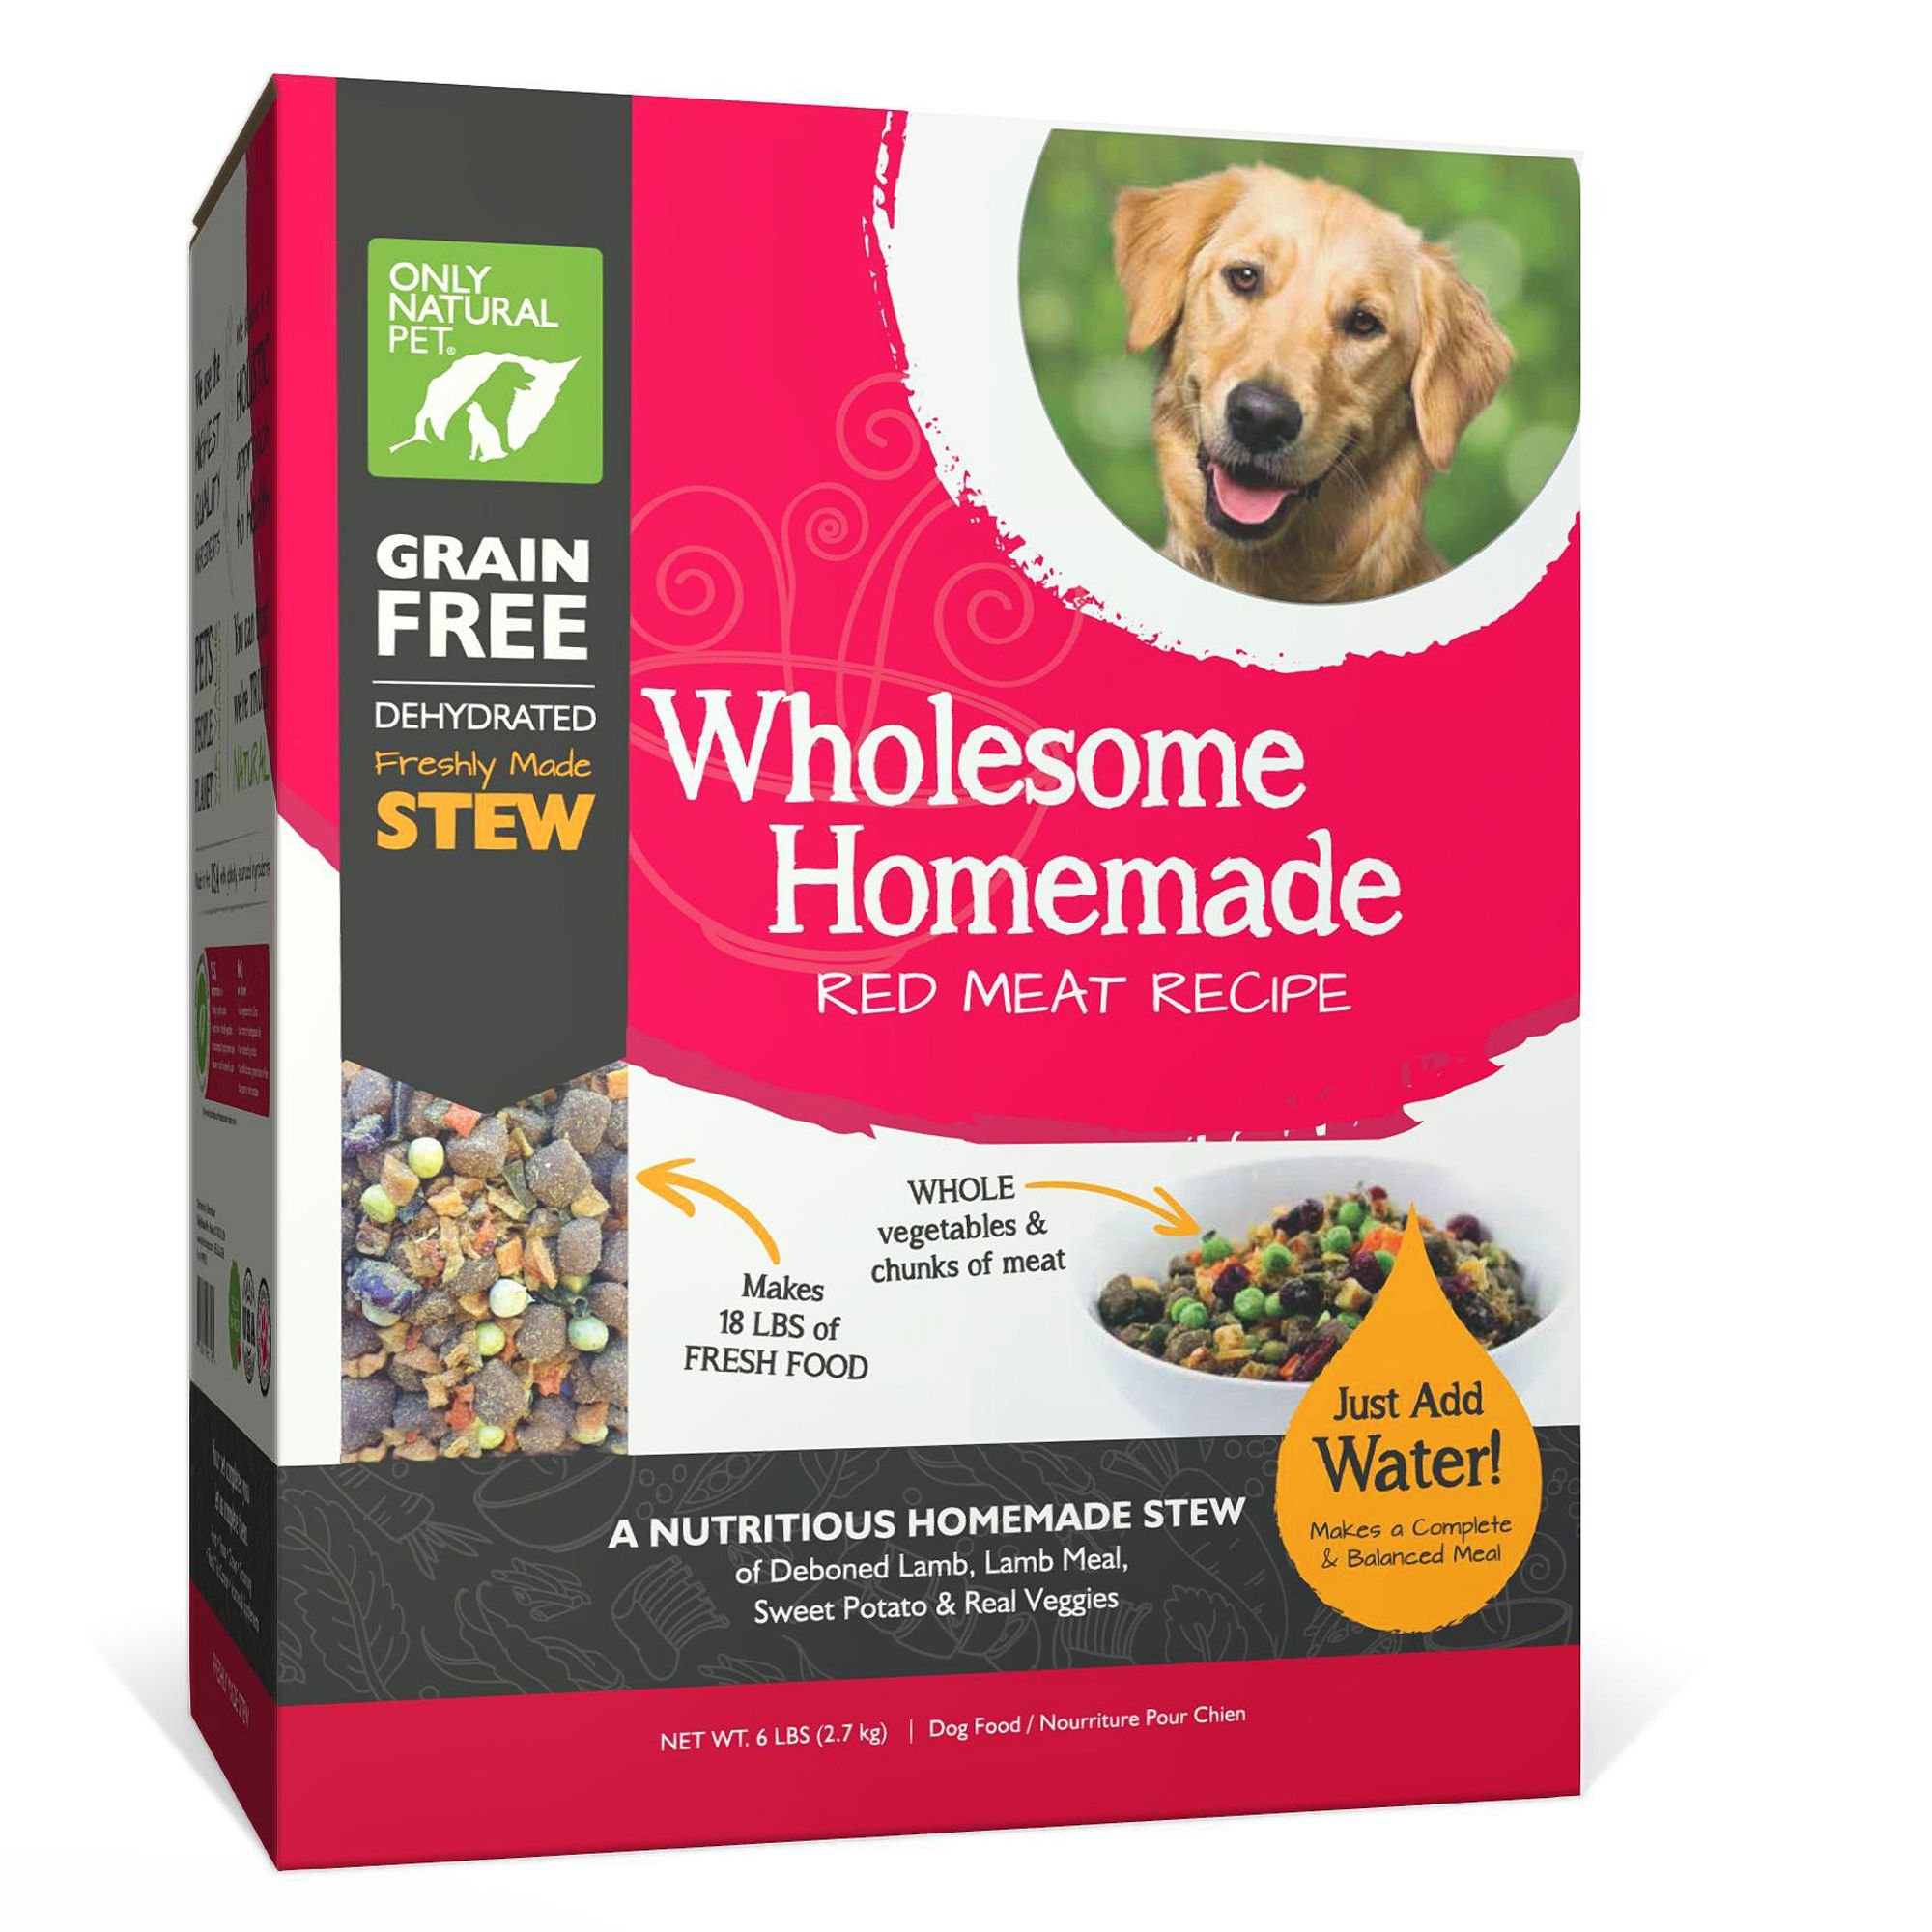 Only Natural Pet Wholesome Homemade Dog Food - Grain Free, Dehydrated, Red Meat size: 6 Lb, Turkey, Chicken, Stew, Lamb and Pork 5259988